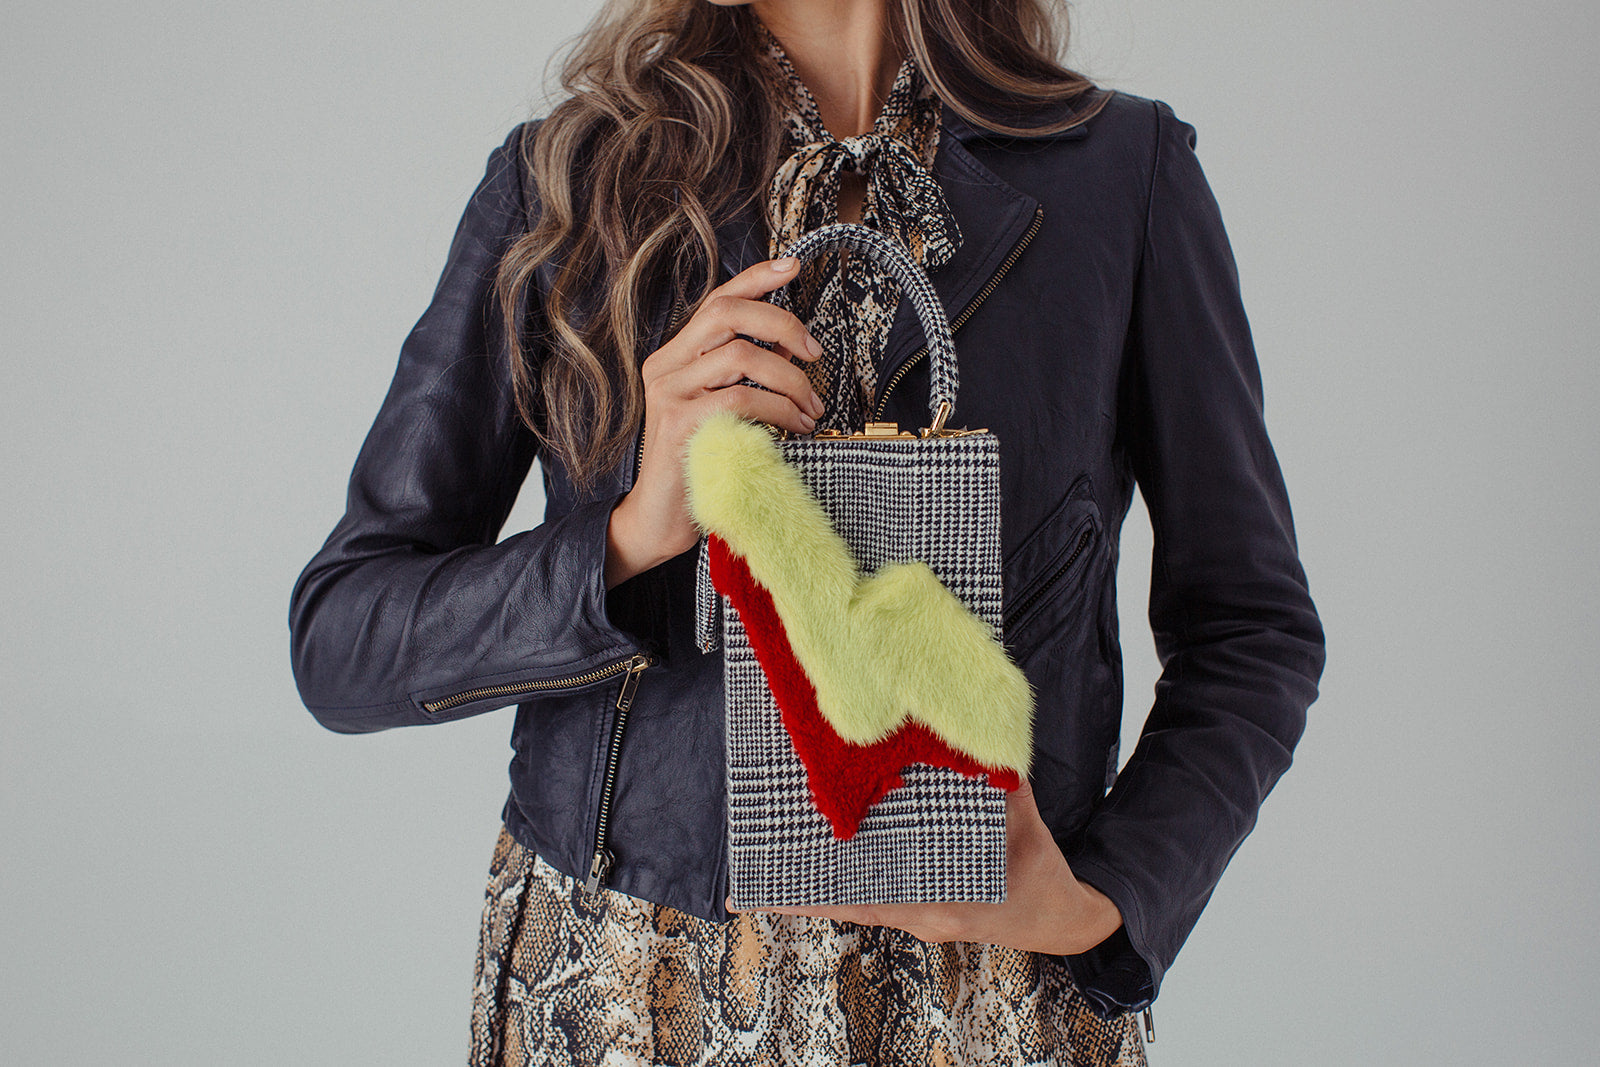 Her Houndstooth and Mink Handbag